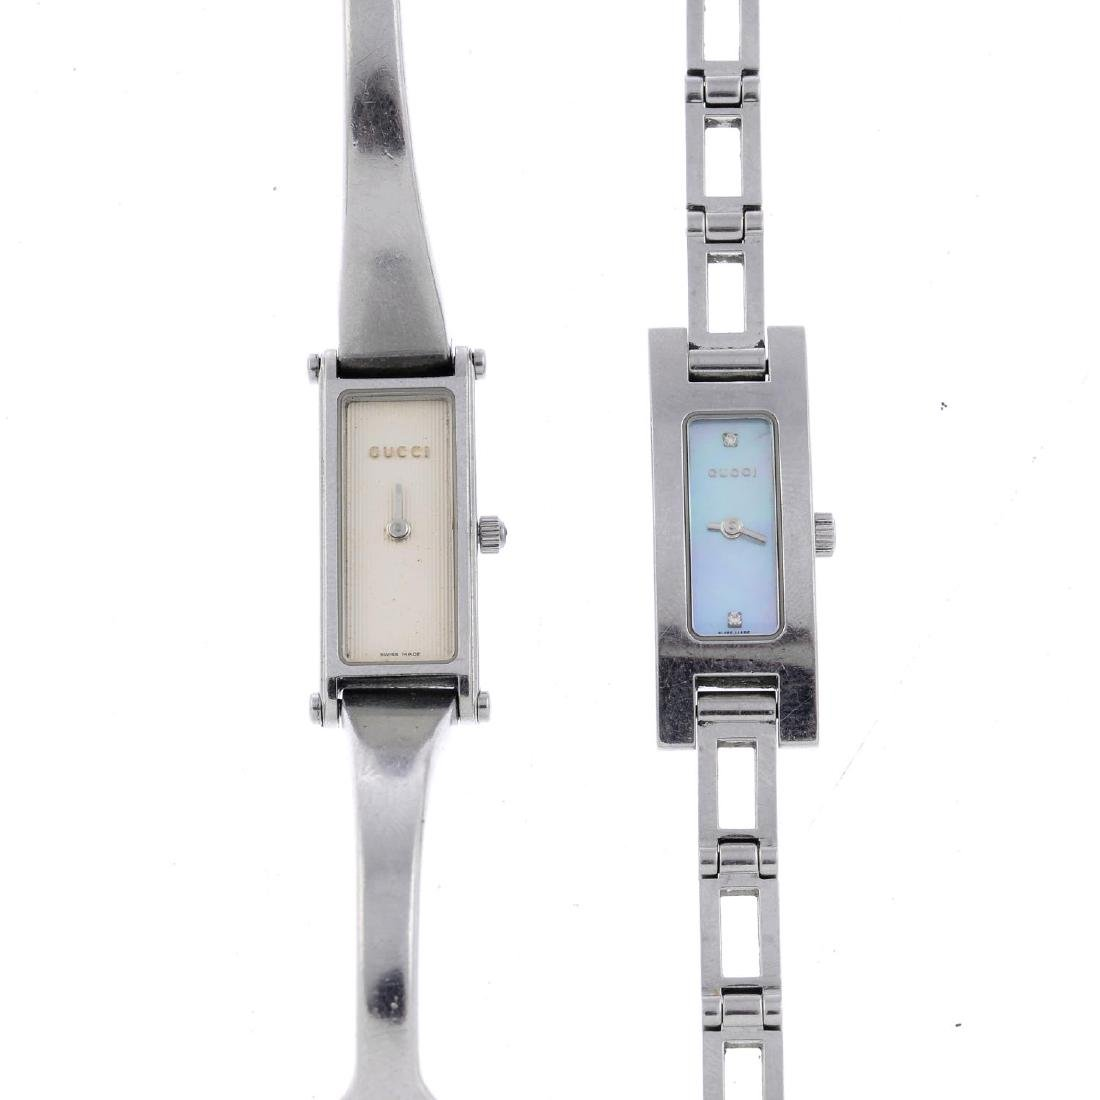 GUCCI - a lady's 3900L bracelet watch. Stainless steel